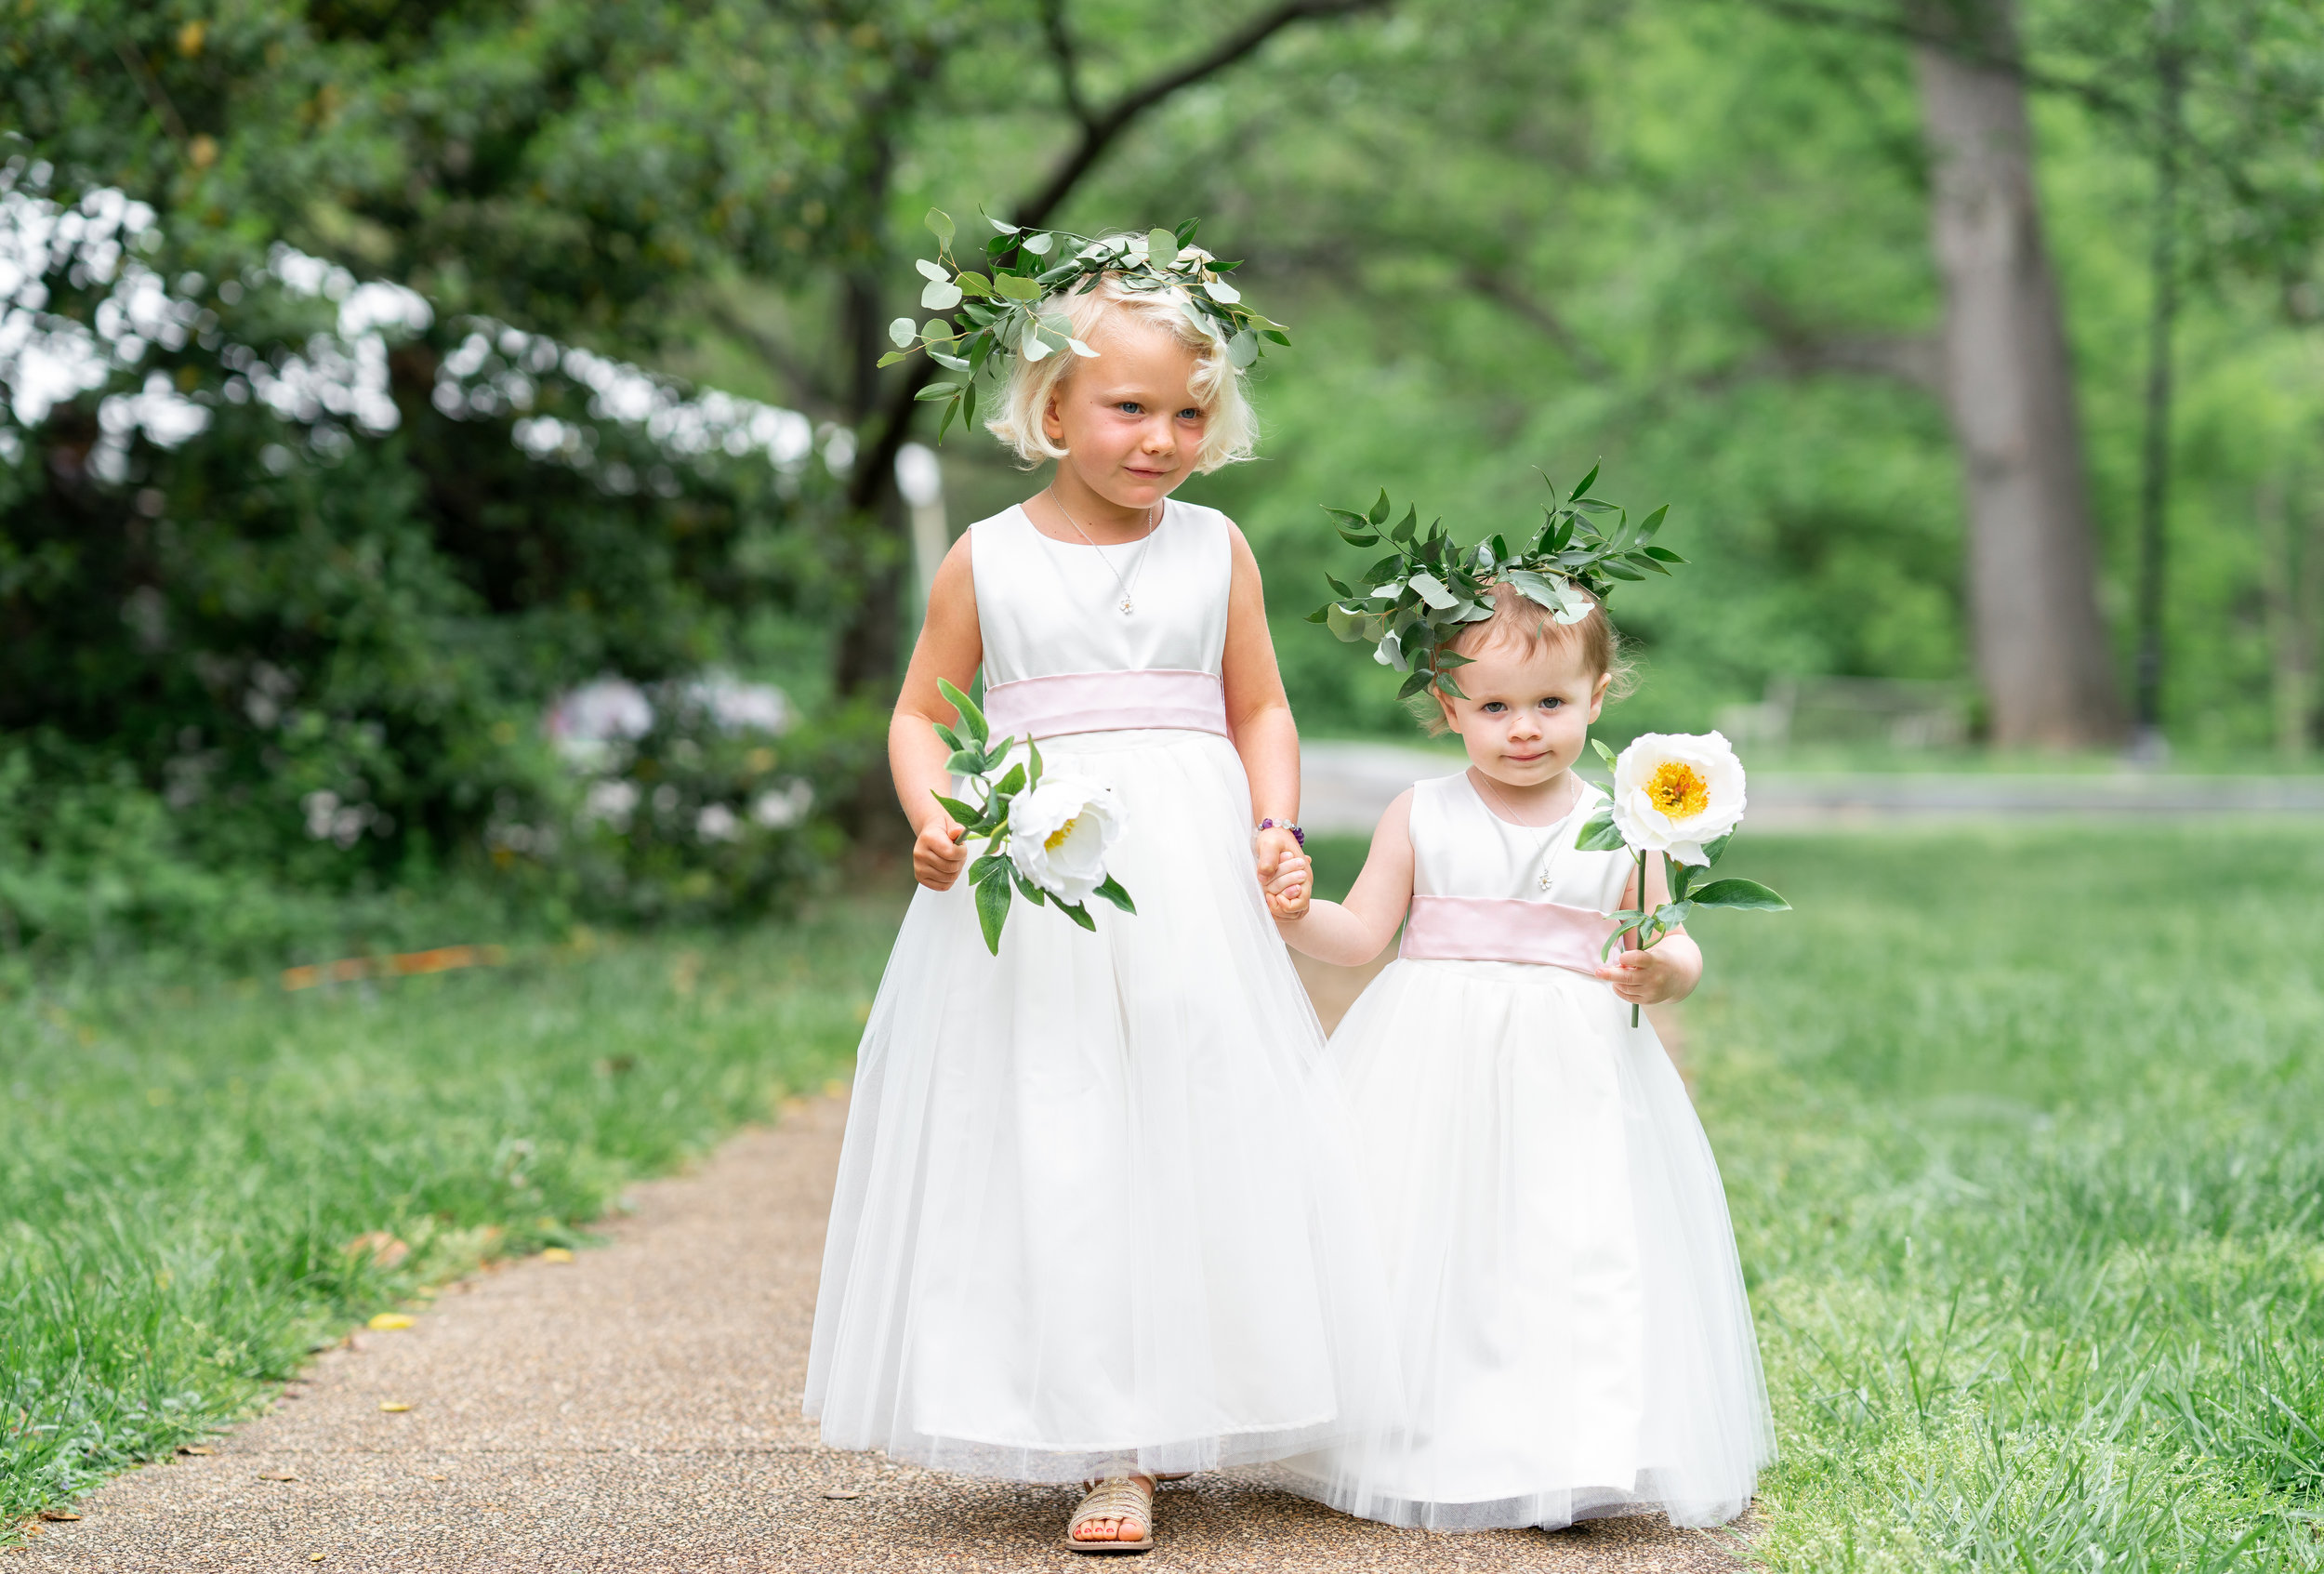 Flower girls in flower crowns walking down the aisle at Hendry house wedding